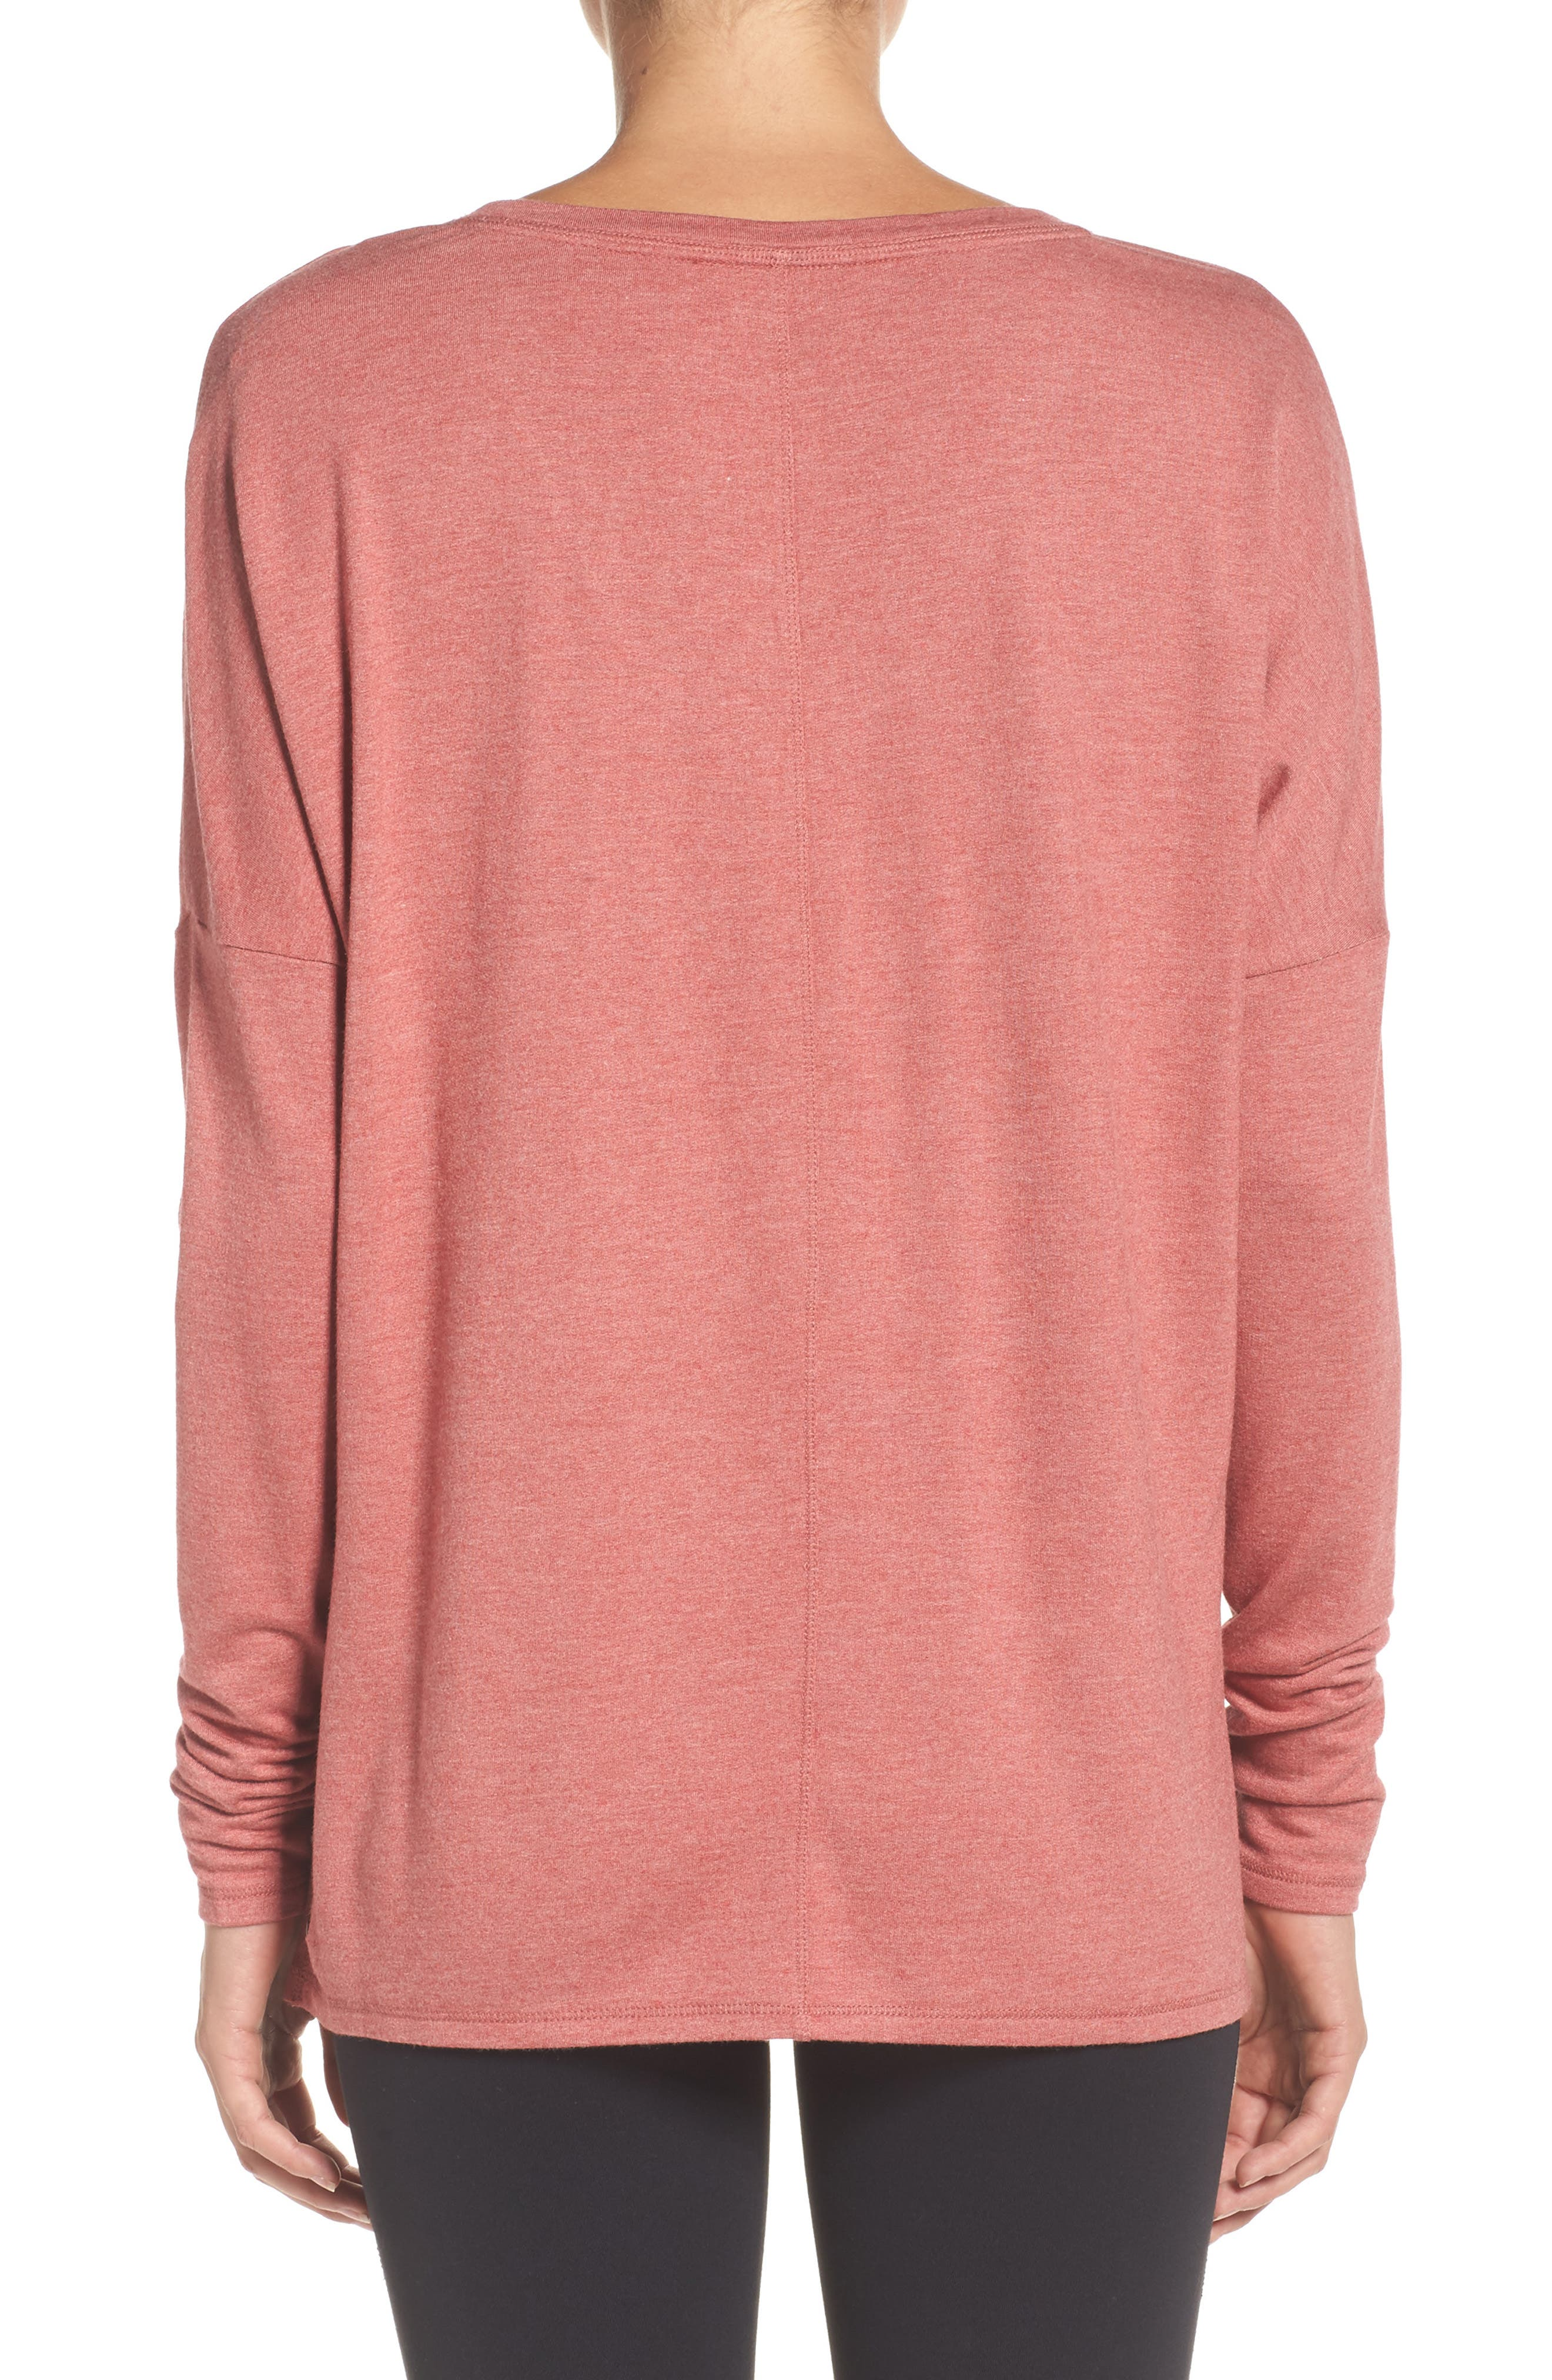 She's Cute Terry Pullover,                             Alternate thumbnail 7, color,